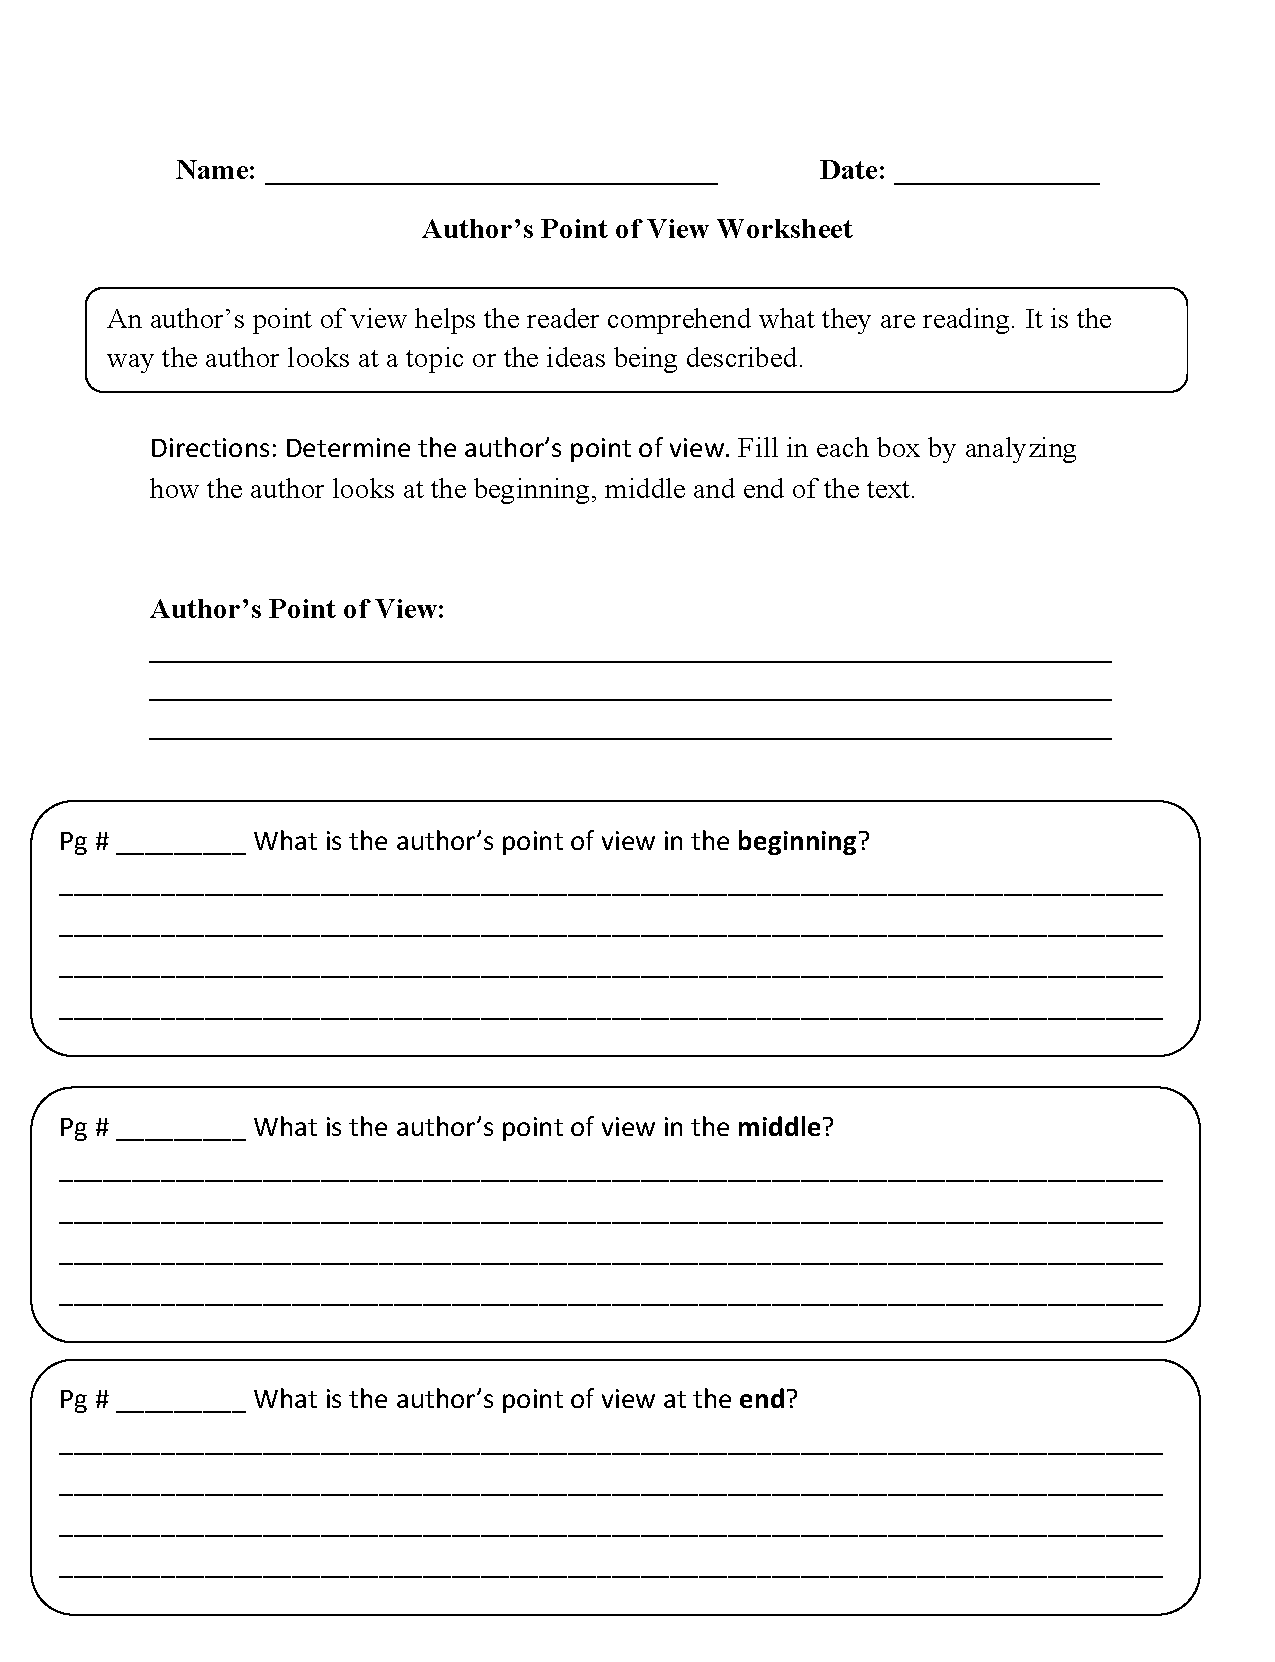 Weirdmailus  Nice Englishlinxcom  Point Of View Worksheets With Inspiring Point Of View Worksheets With Nice Free Money Worksheets For First Grade Also Counting On Addition Worksheets In Addition Monomial Worksheet And Qualitative And Quantitative Worksheets As Well As Water Cycle Worksheets Th Grade Additionally Dihybrid Punnett Square Worksheet With Answers From Englishlinxcom With Weirdmailus  Inspiring Englishlinxcom  Point Of View Worksheets With Nice Point Of View Worksheets And Nice Free Money Worksheets For First Grade Also Counting On Addition Worksheets In Addition Monomial Worksheet From Englishlinxcom